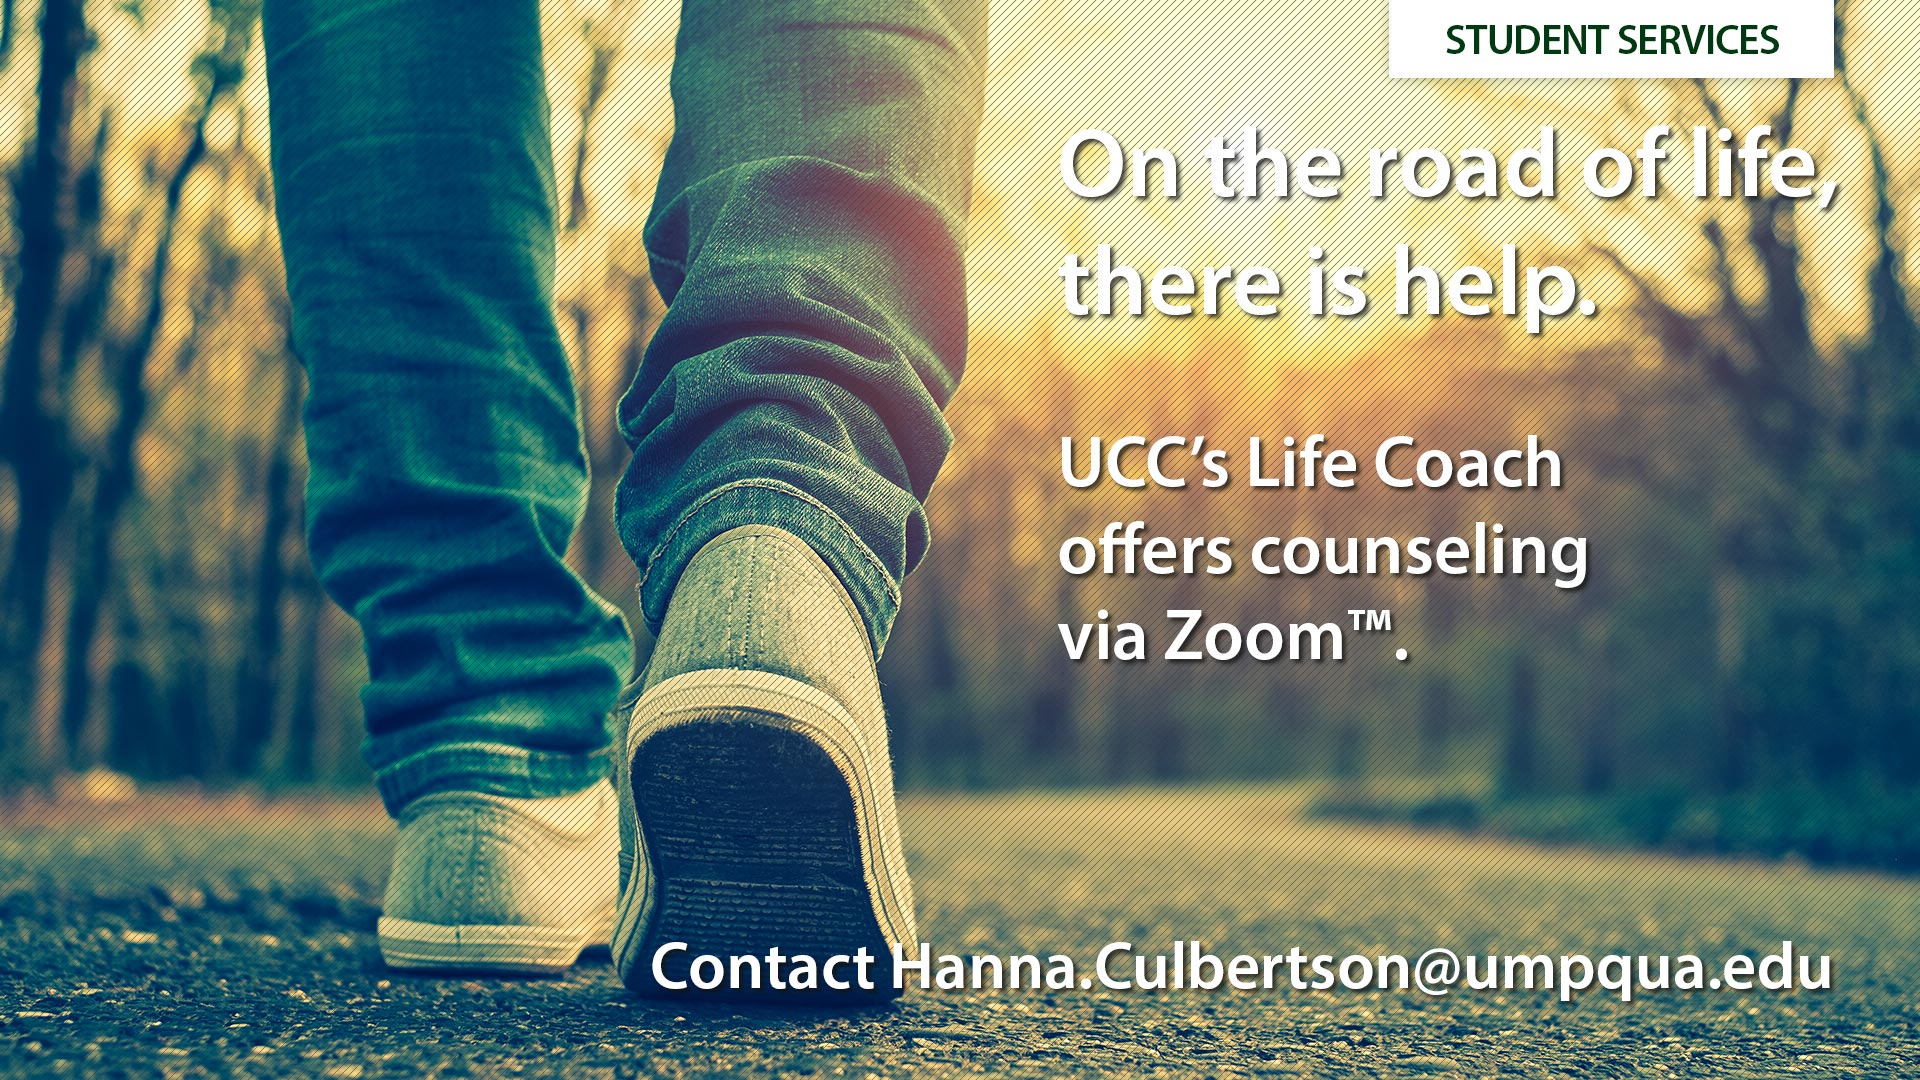 Counseling Services - UCC's Life Coach offers assistance with test anxiety, time management, depression, and more.